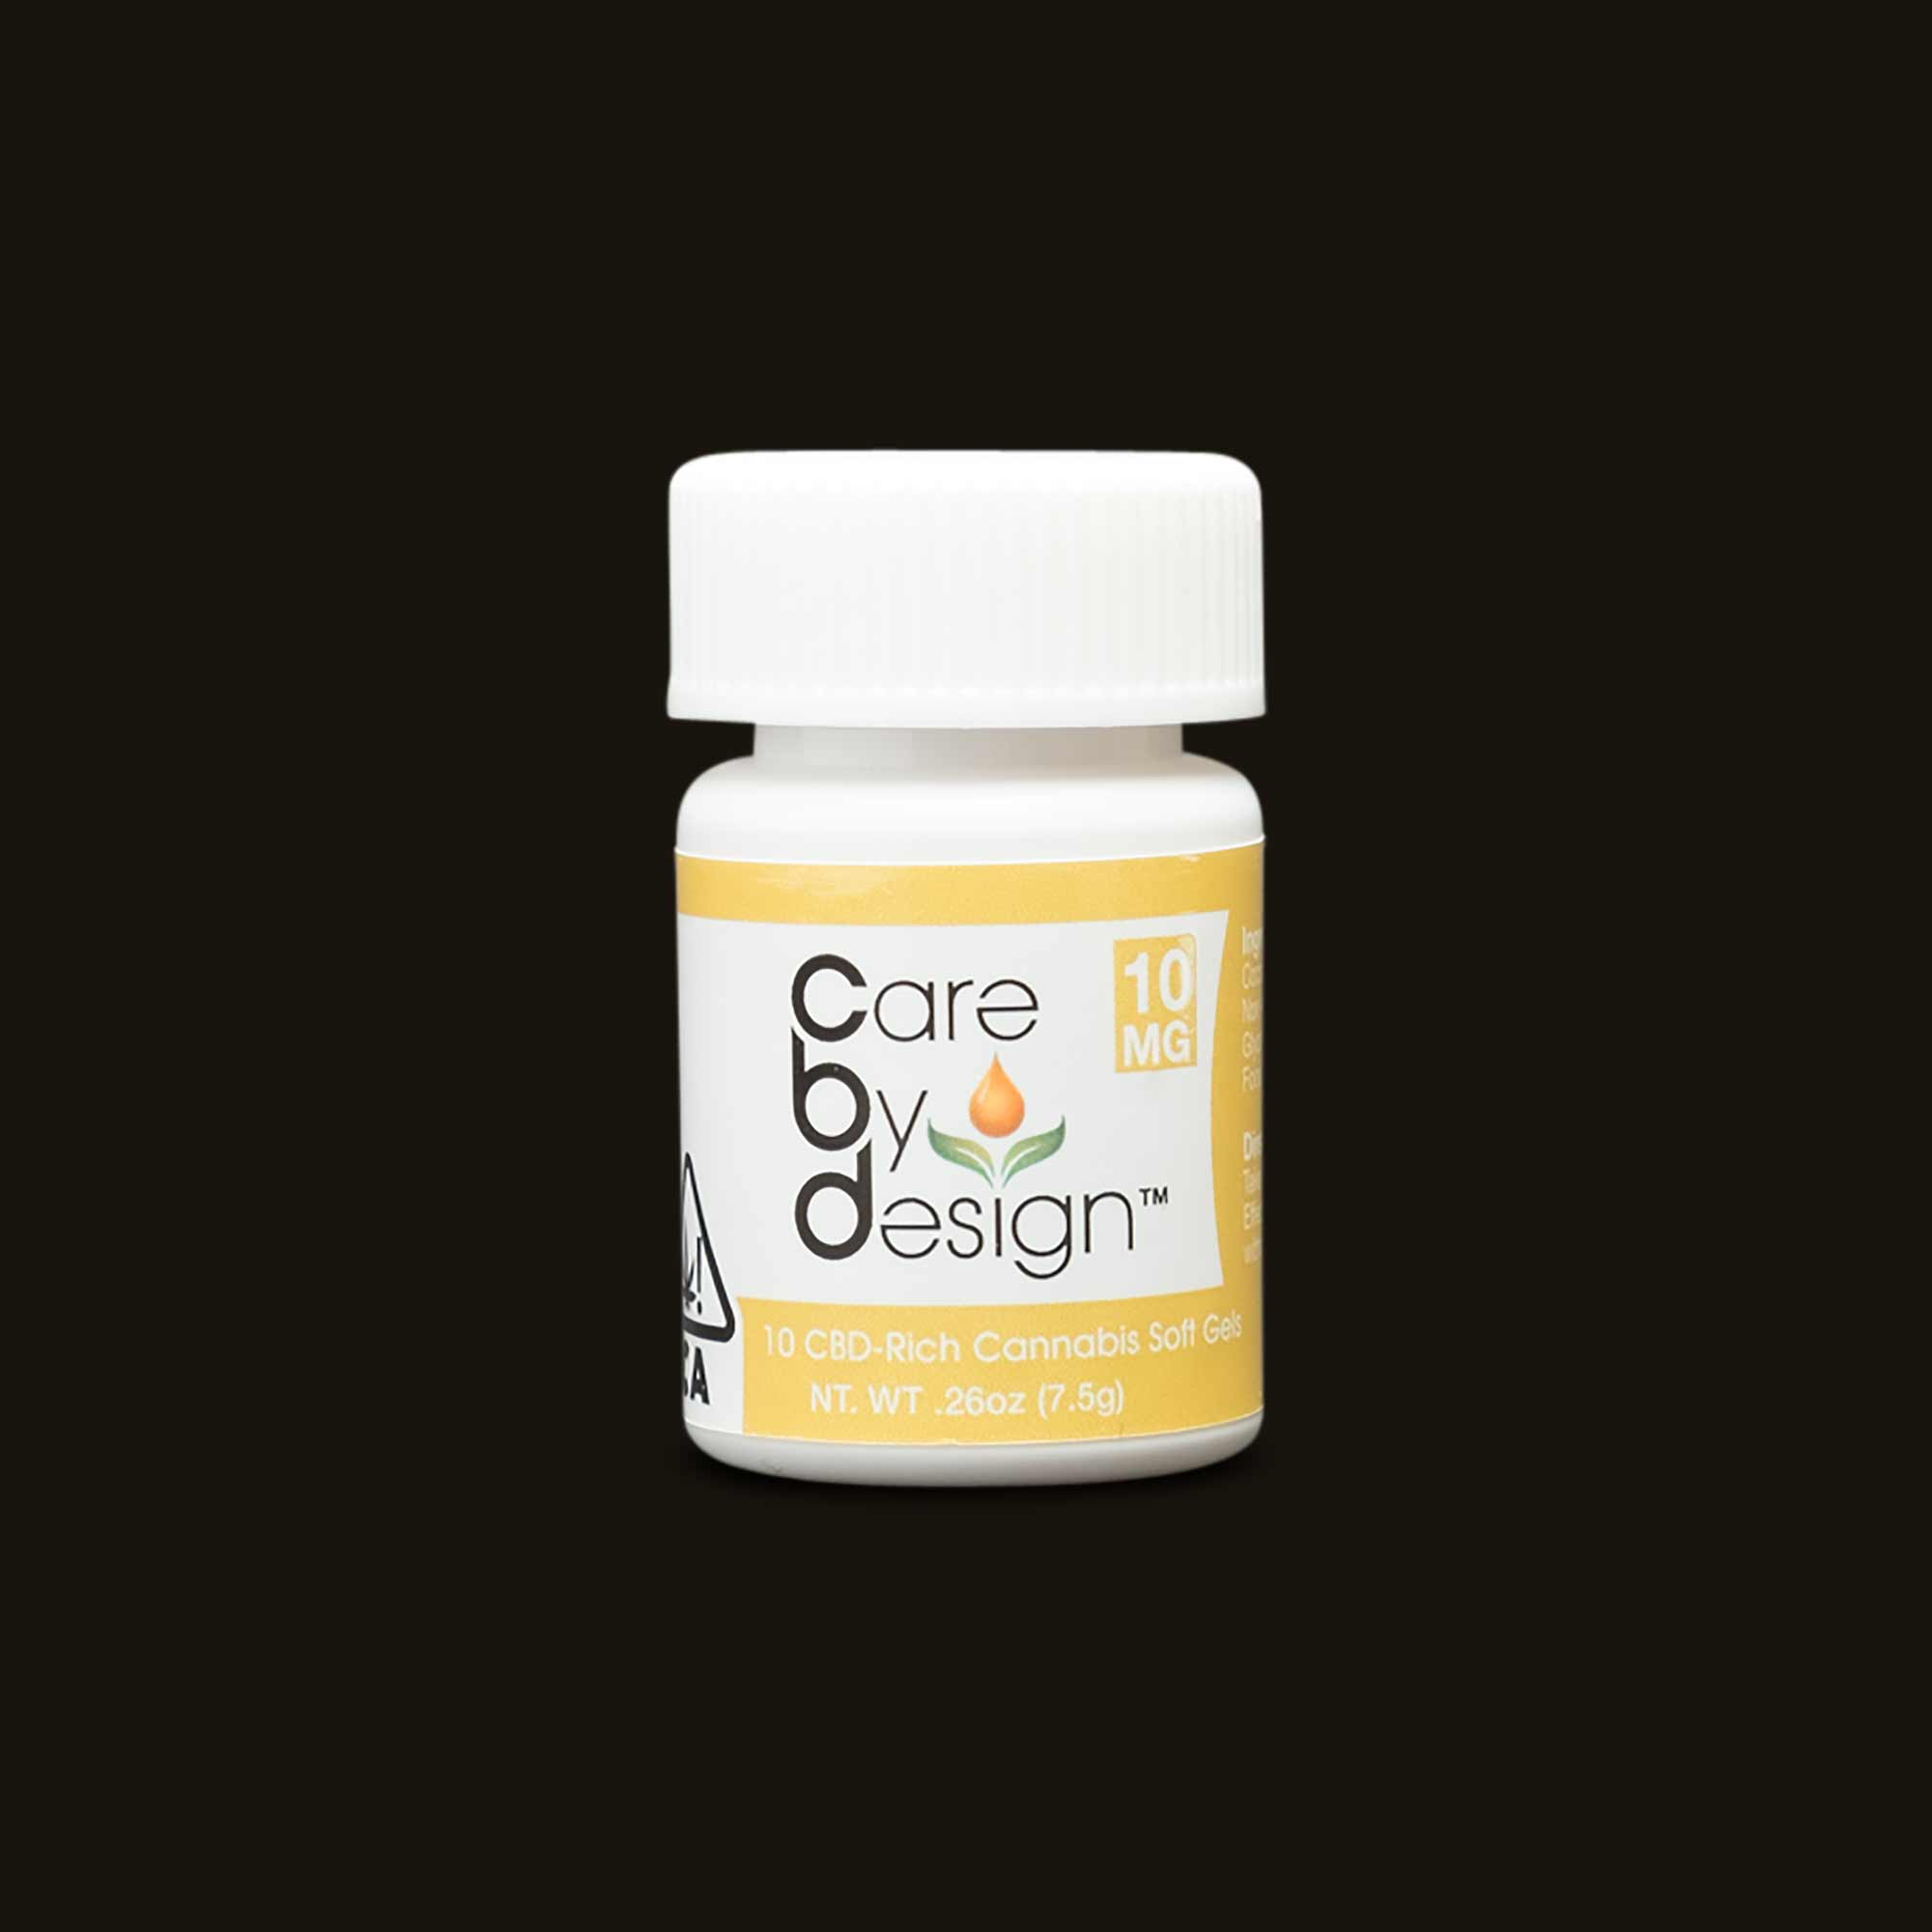 Bottle of Care By Design pills